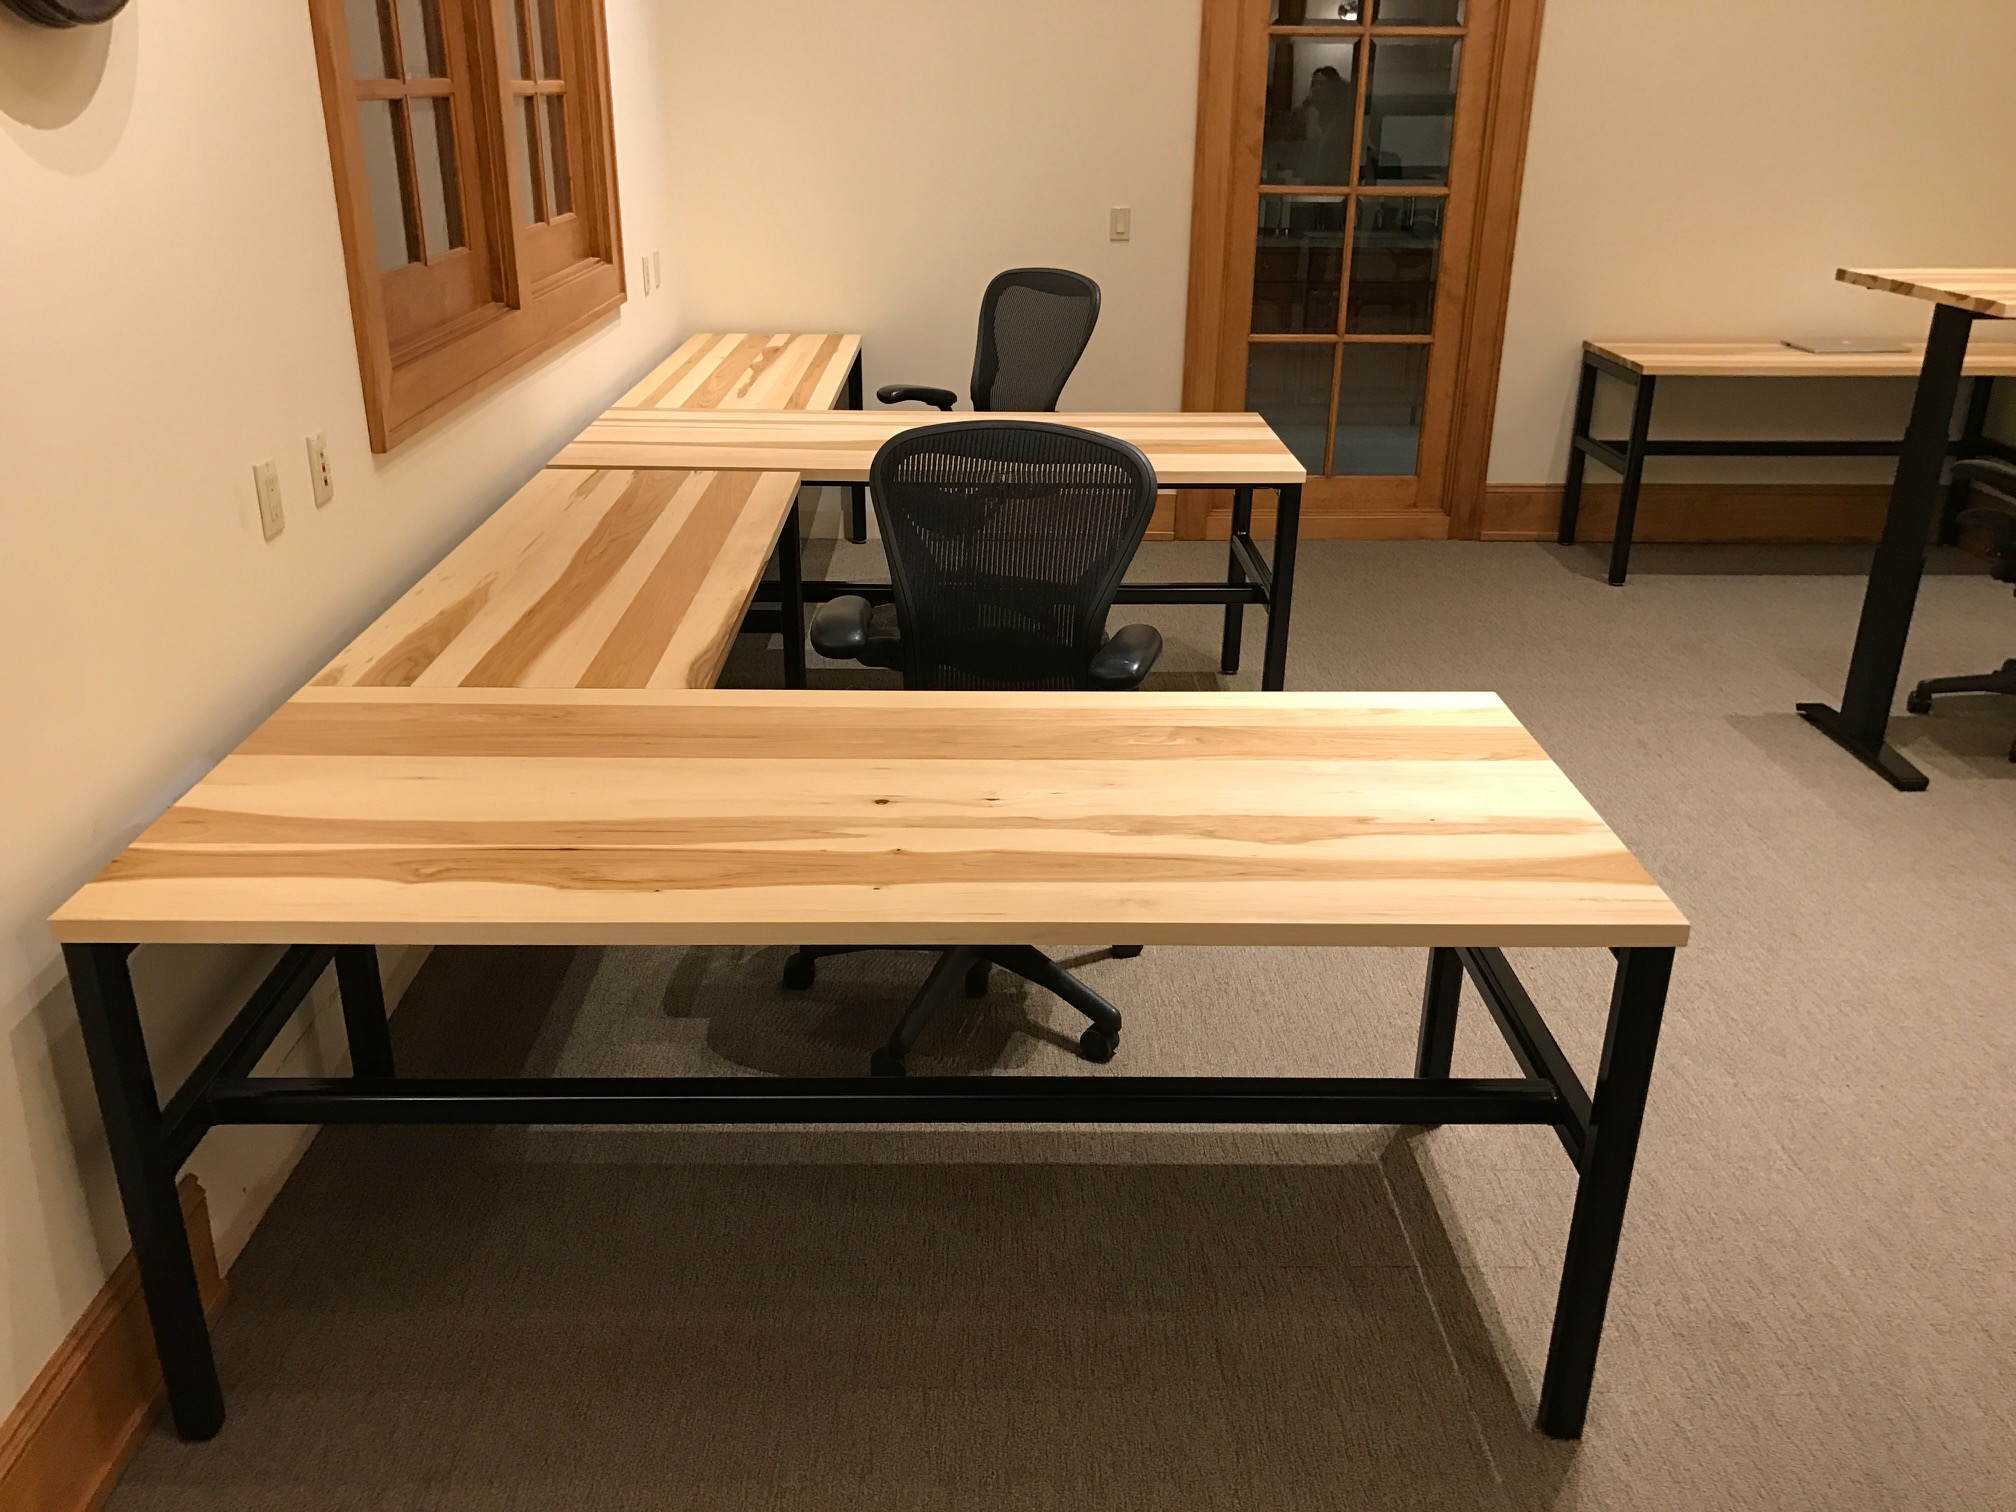 Solid Wood Tables with Style - When a local ice cream company contacted us looking to add character to their office space, solid wood desks immediately came to mind. Mounted on black powder-coated steel frames or electric height-adjustable legs, the hickory tables accented the space beautifully and created a look as unique as the flavors they produce.